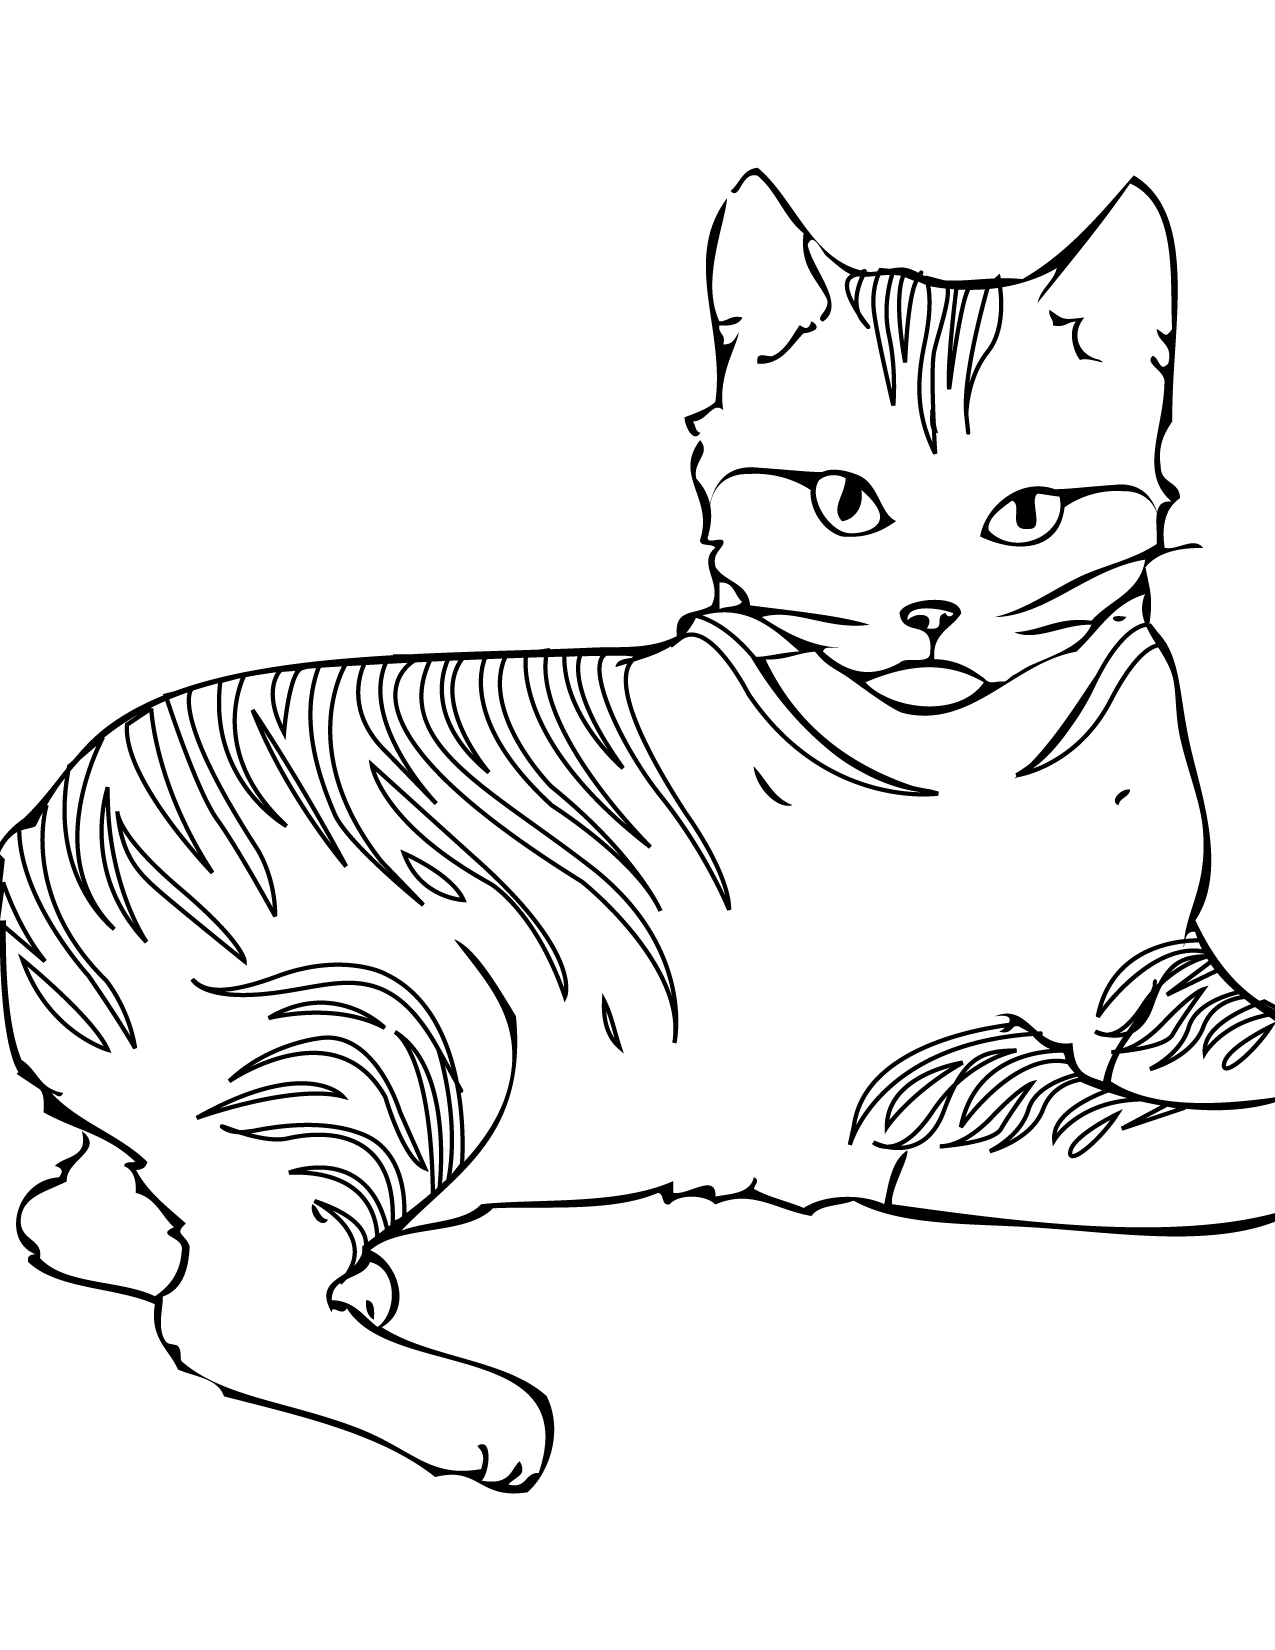 cat colouring pages springtime cat coloring page favecraftscom colouring pages cat